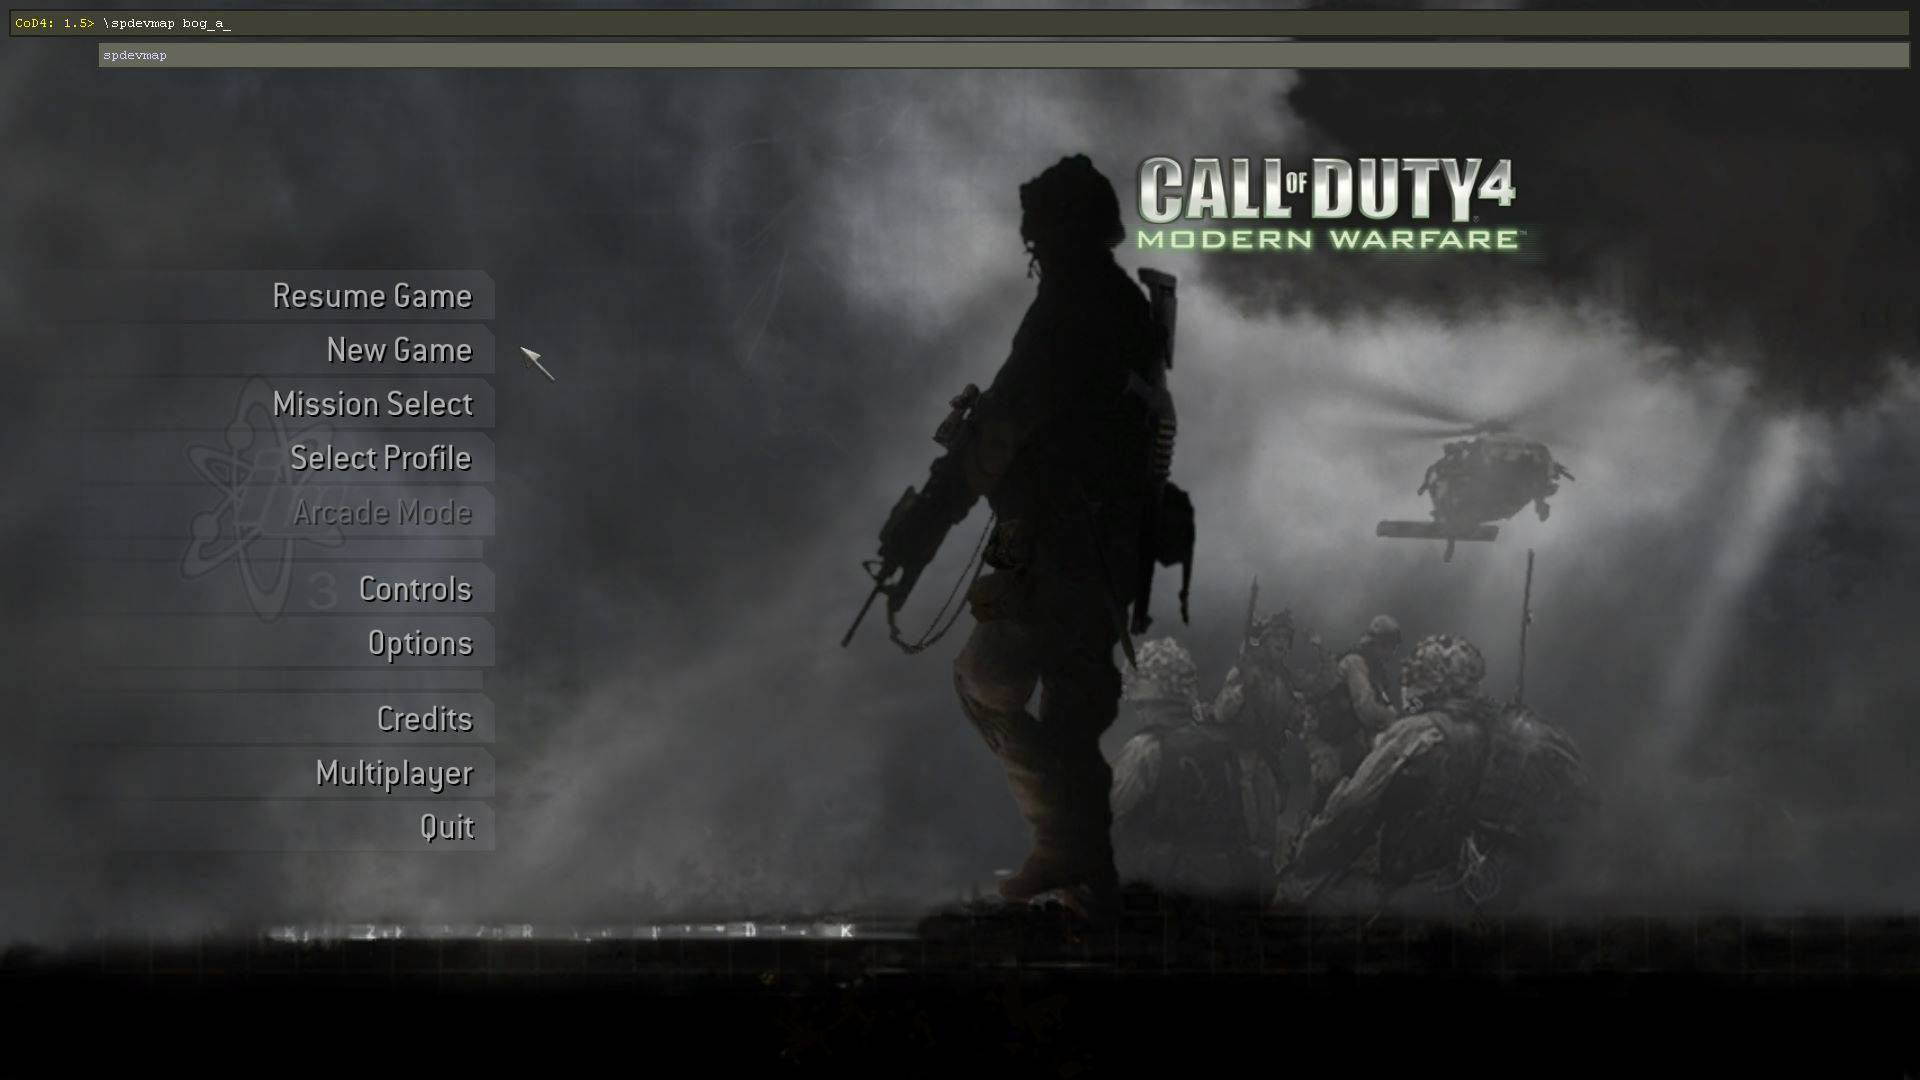 Call of Duty 4 Cheats spdevmap mapname